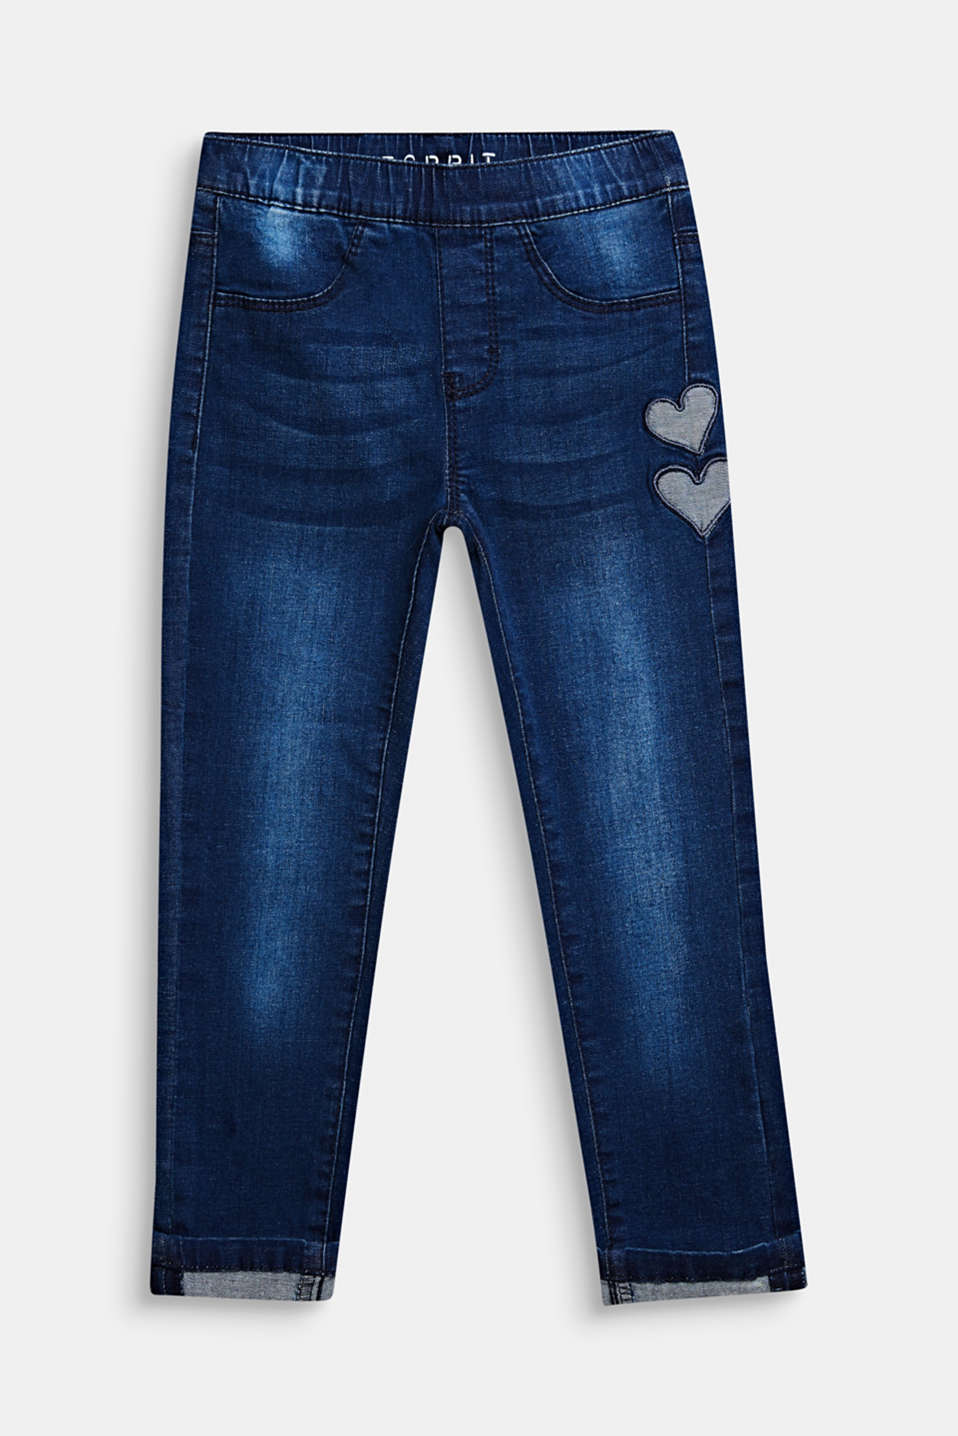 Heart pattern stretch jeans with an elasticated waistband